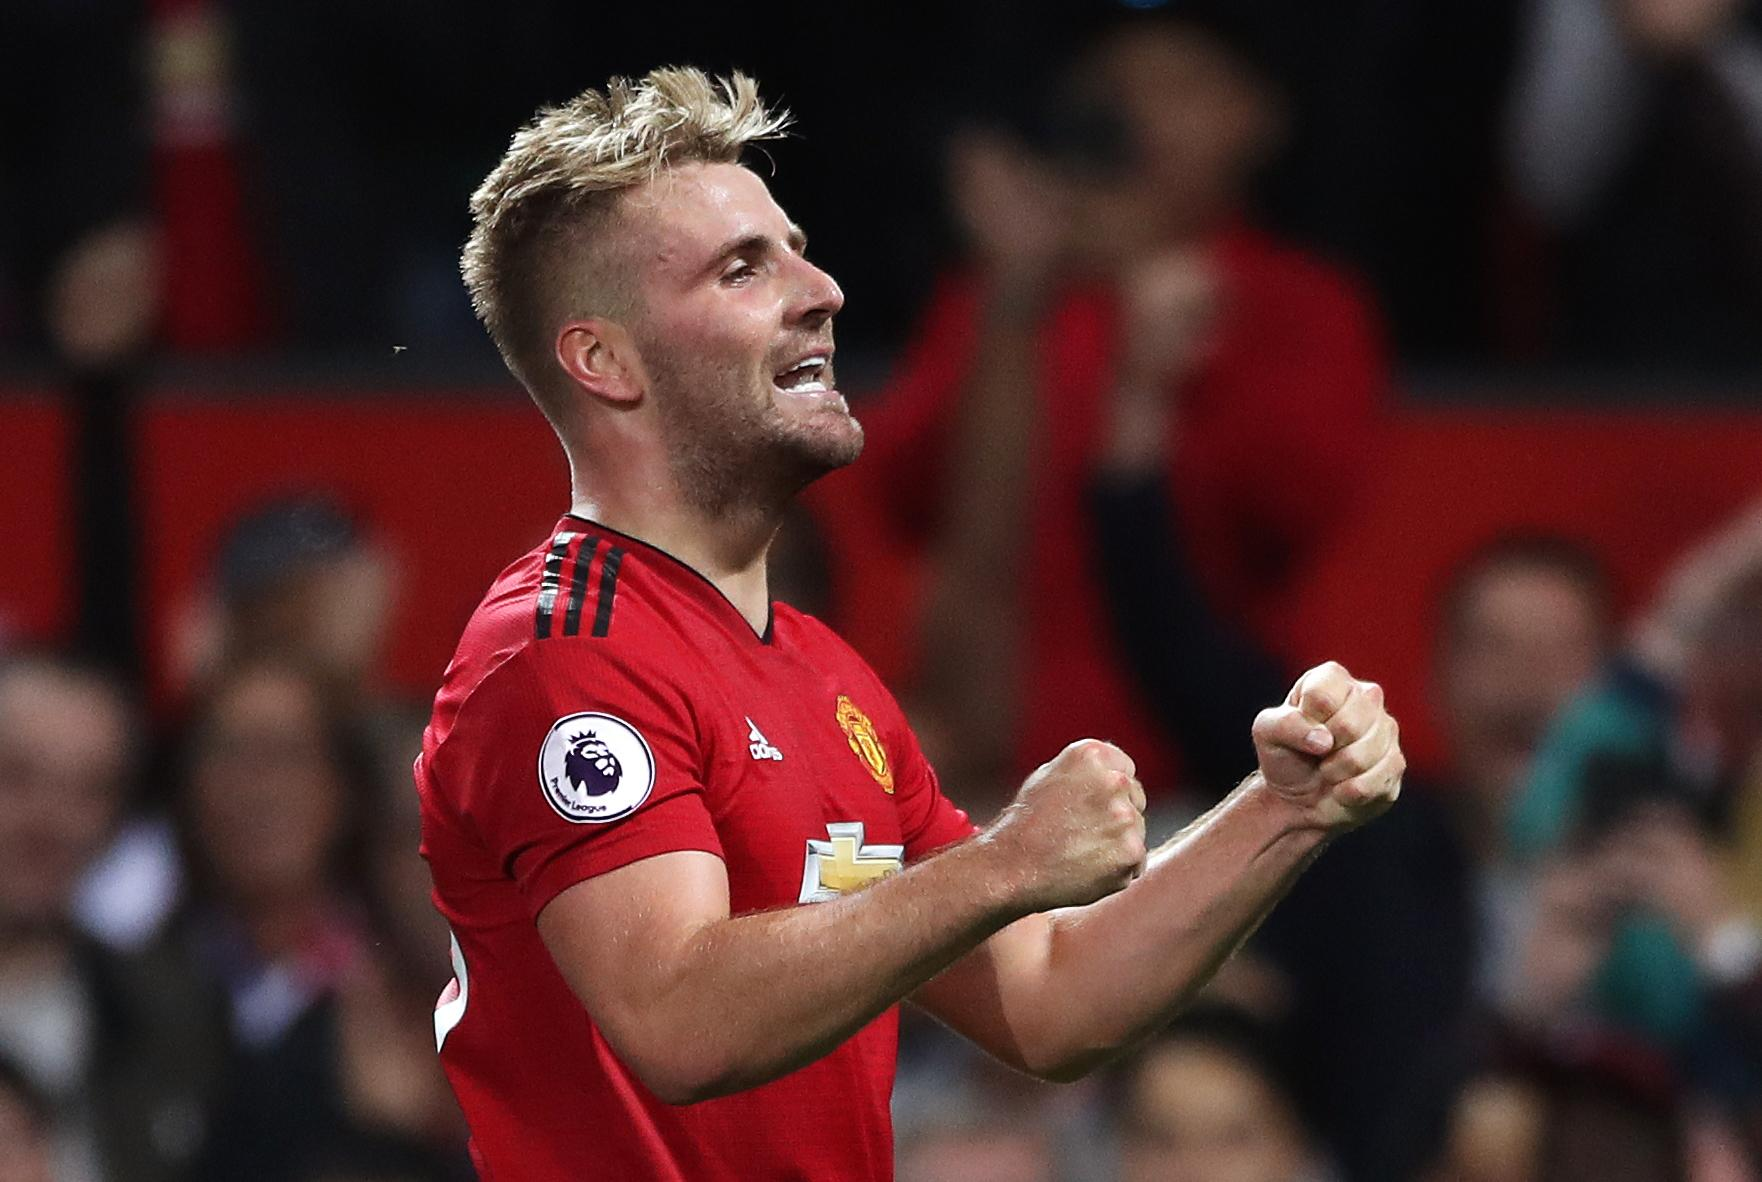 He celebrates scoring against Leicester on the opening day of this season